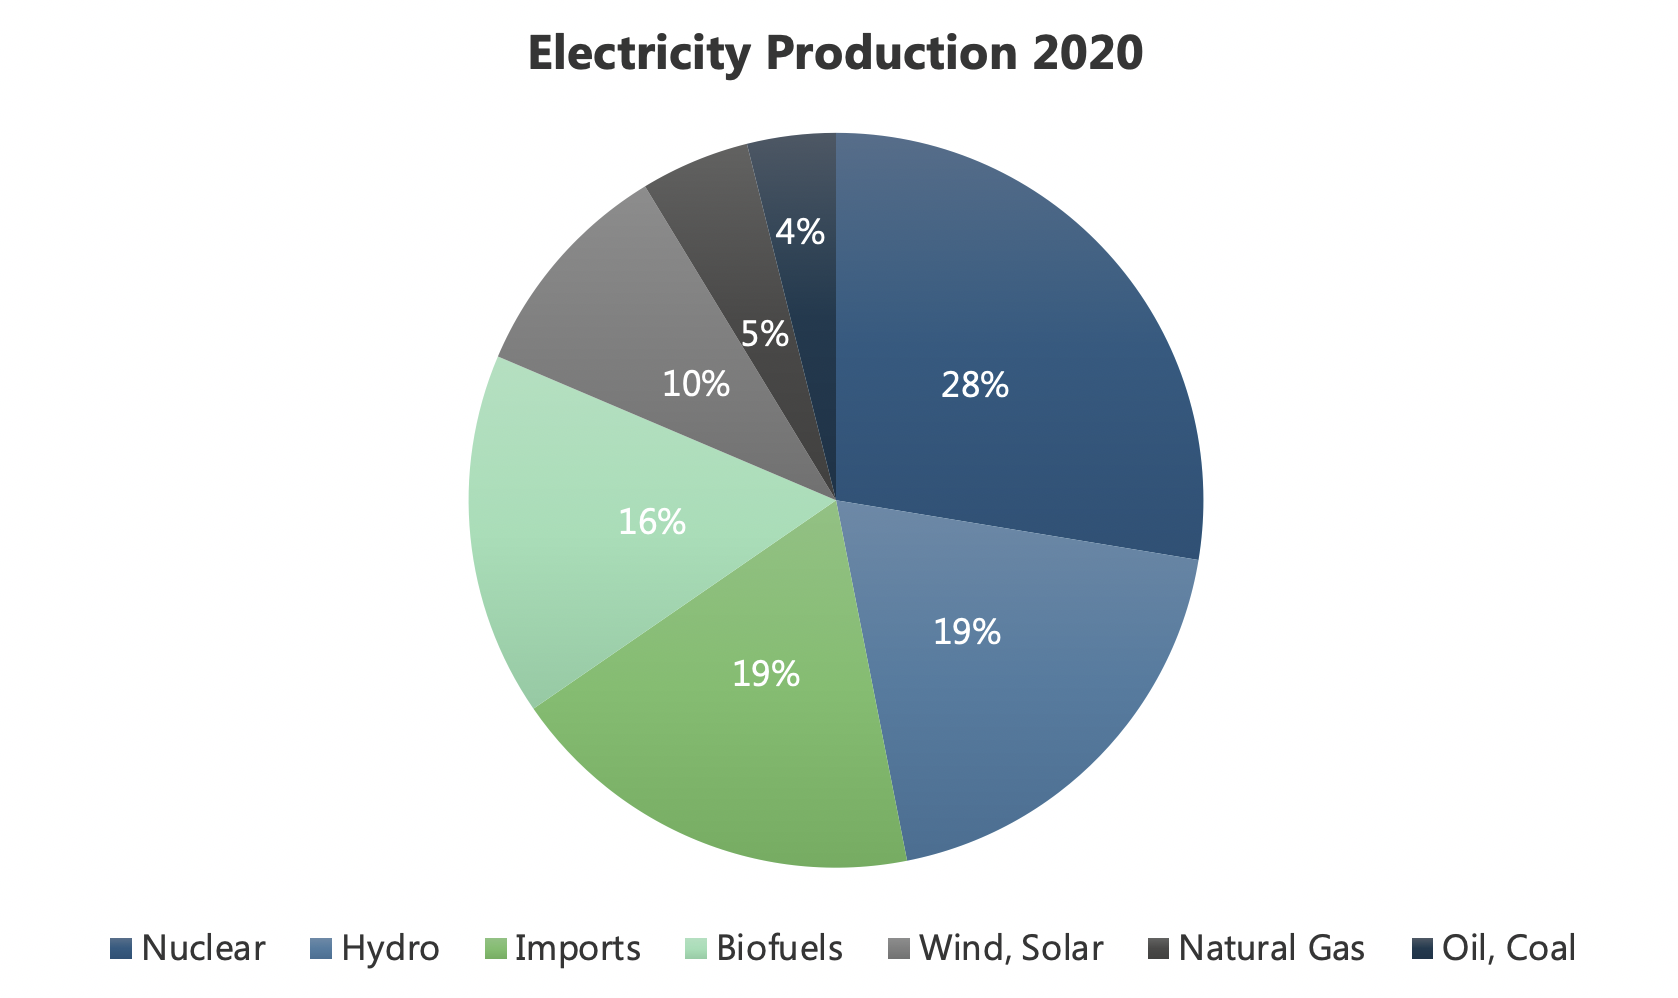 Figure 1: Finland's electricity production by energy source in 2020.